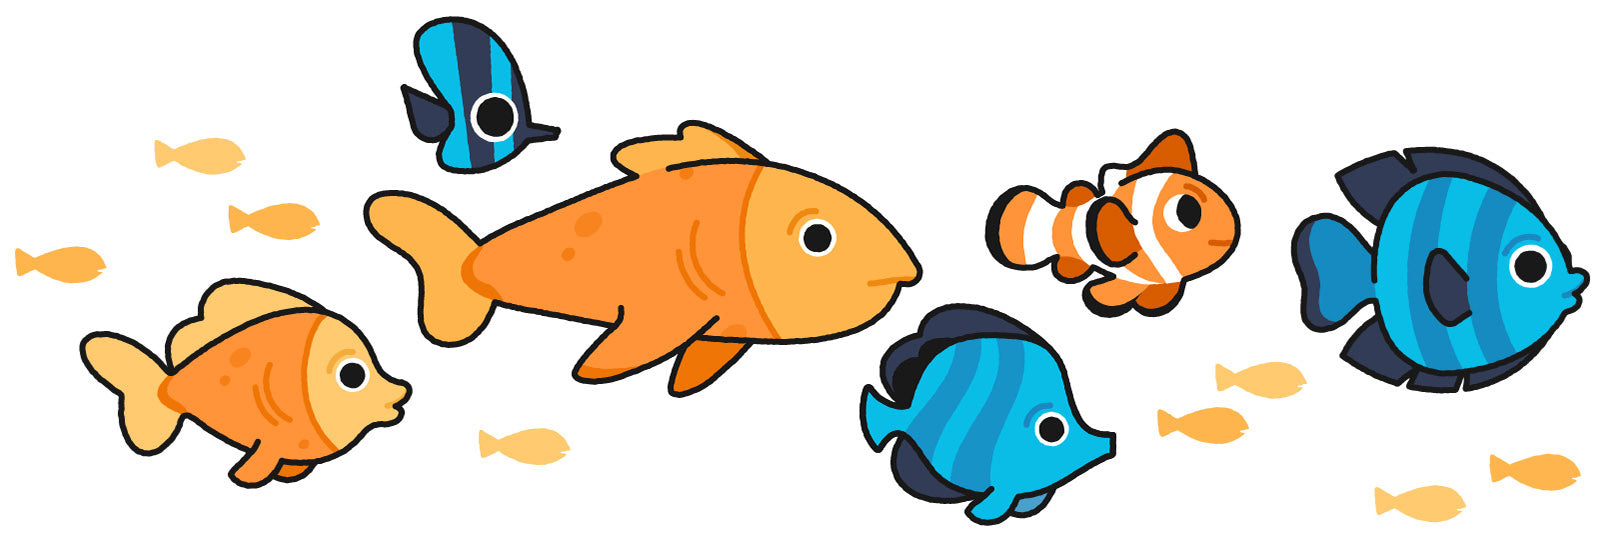 illustrated, brightly colored school of fish